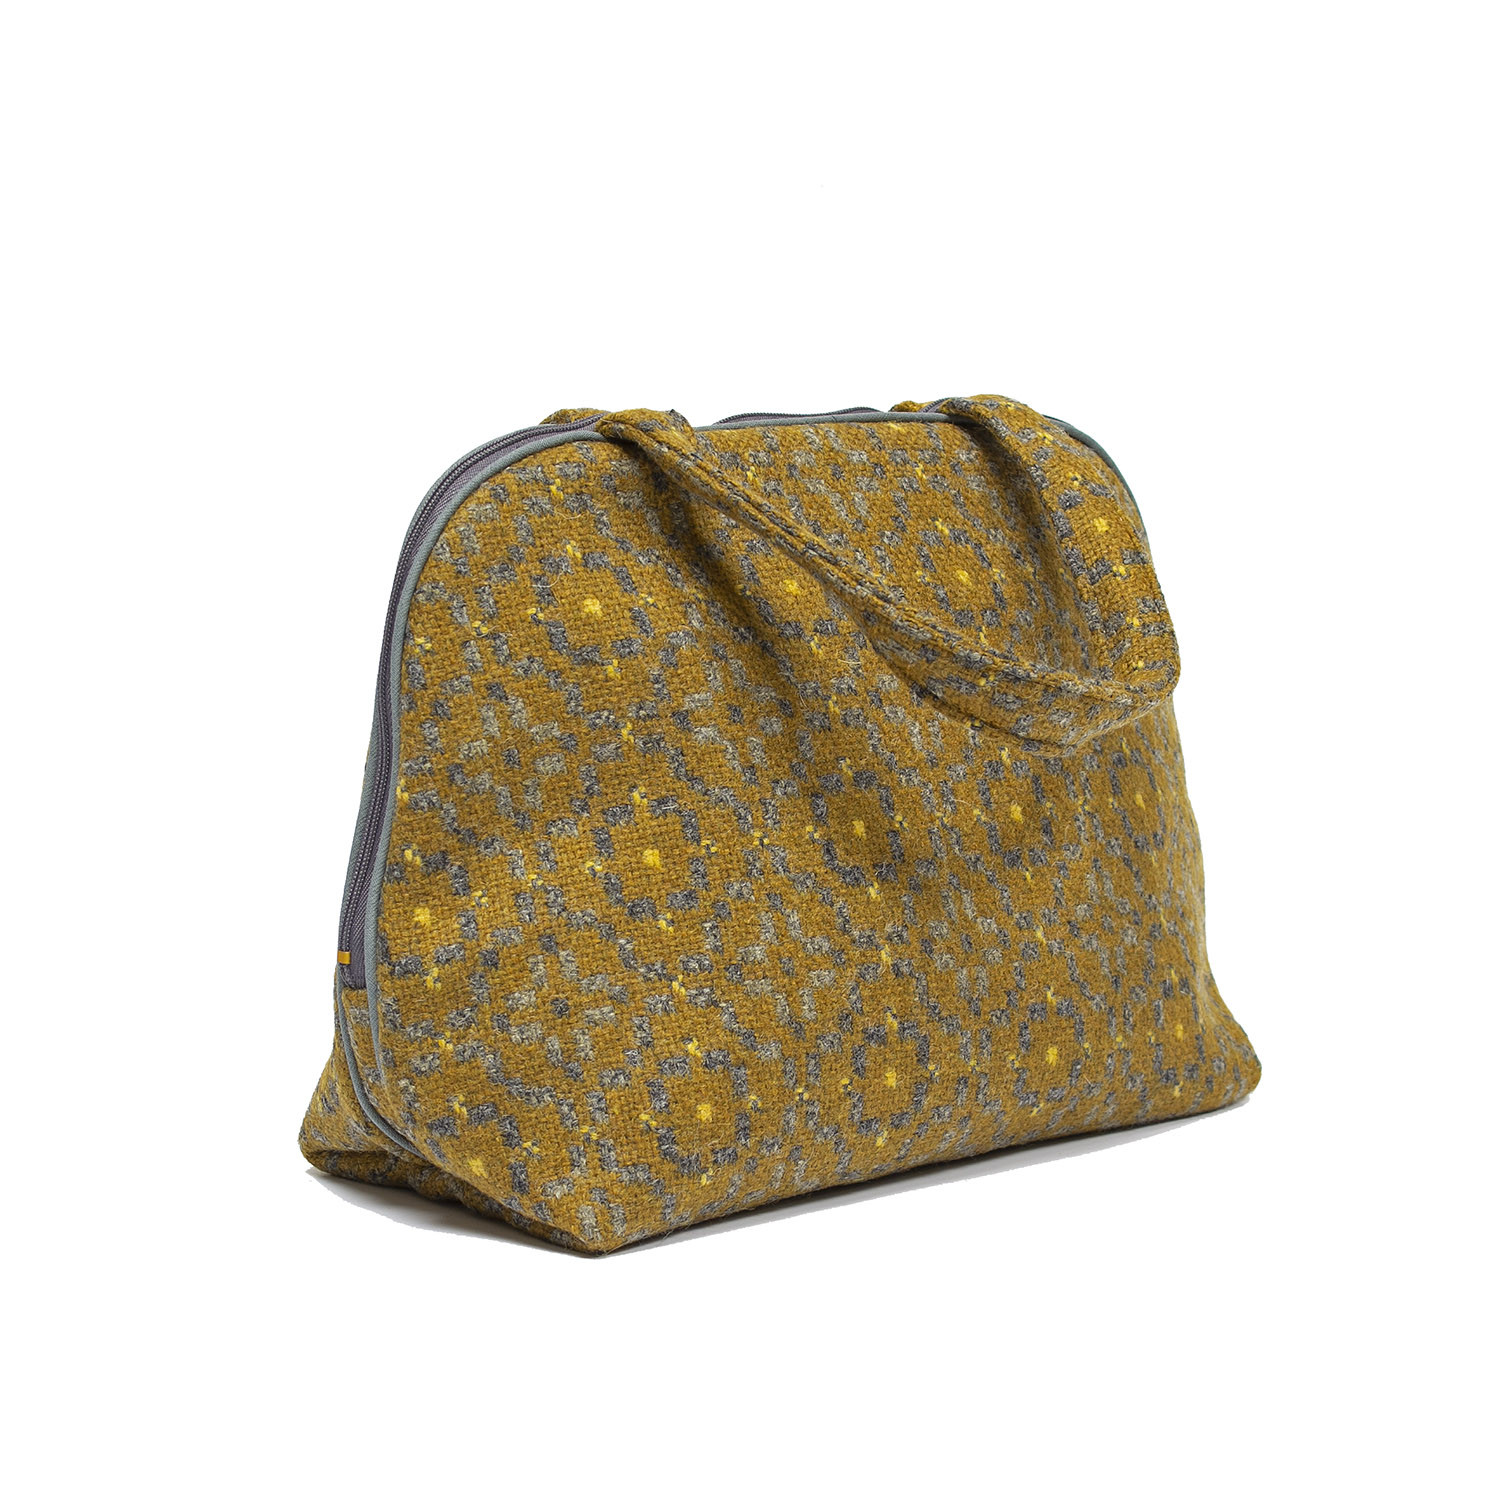 Vintage rose mustard tote bag